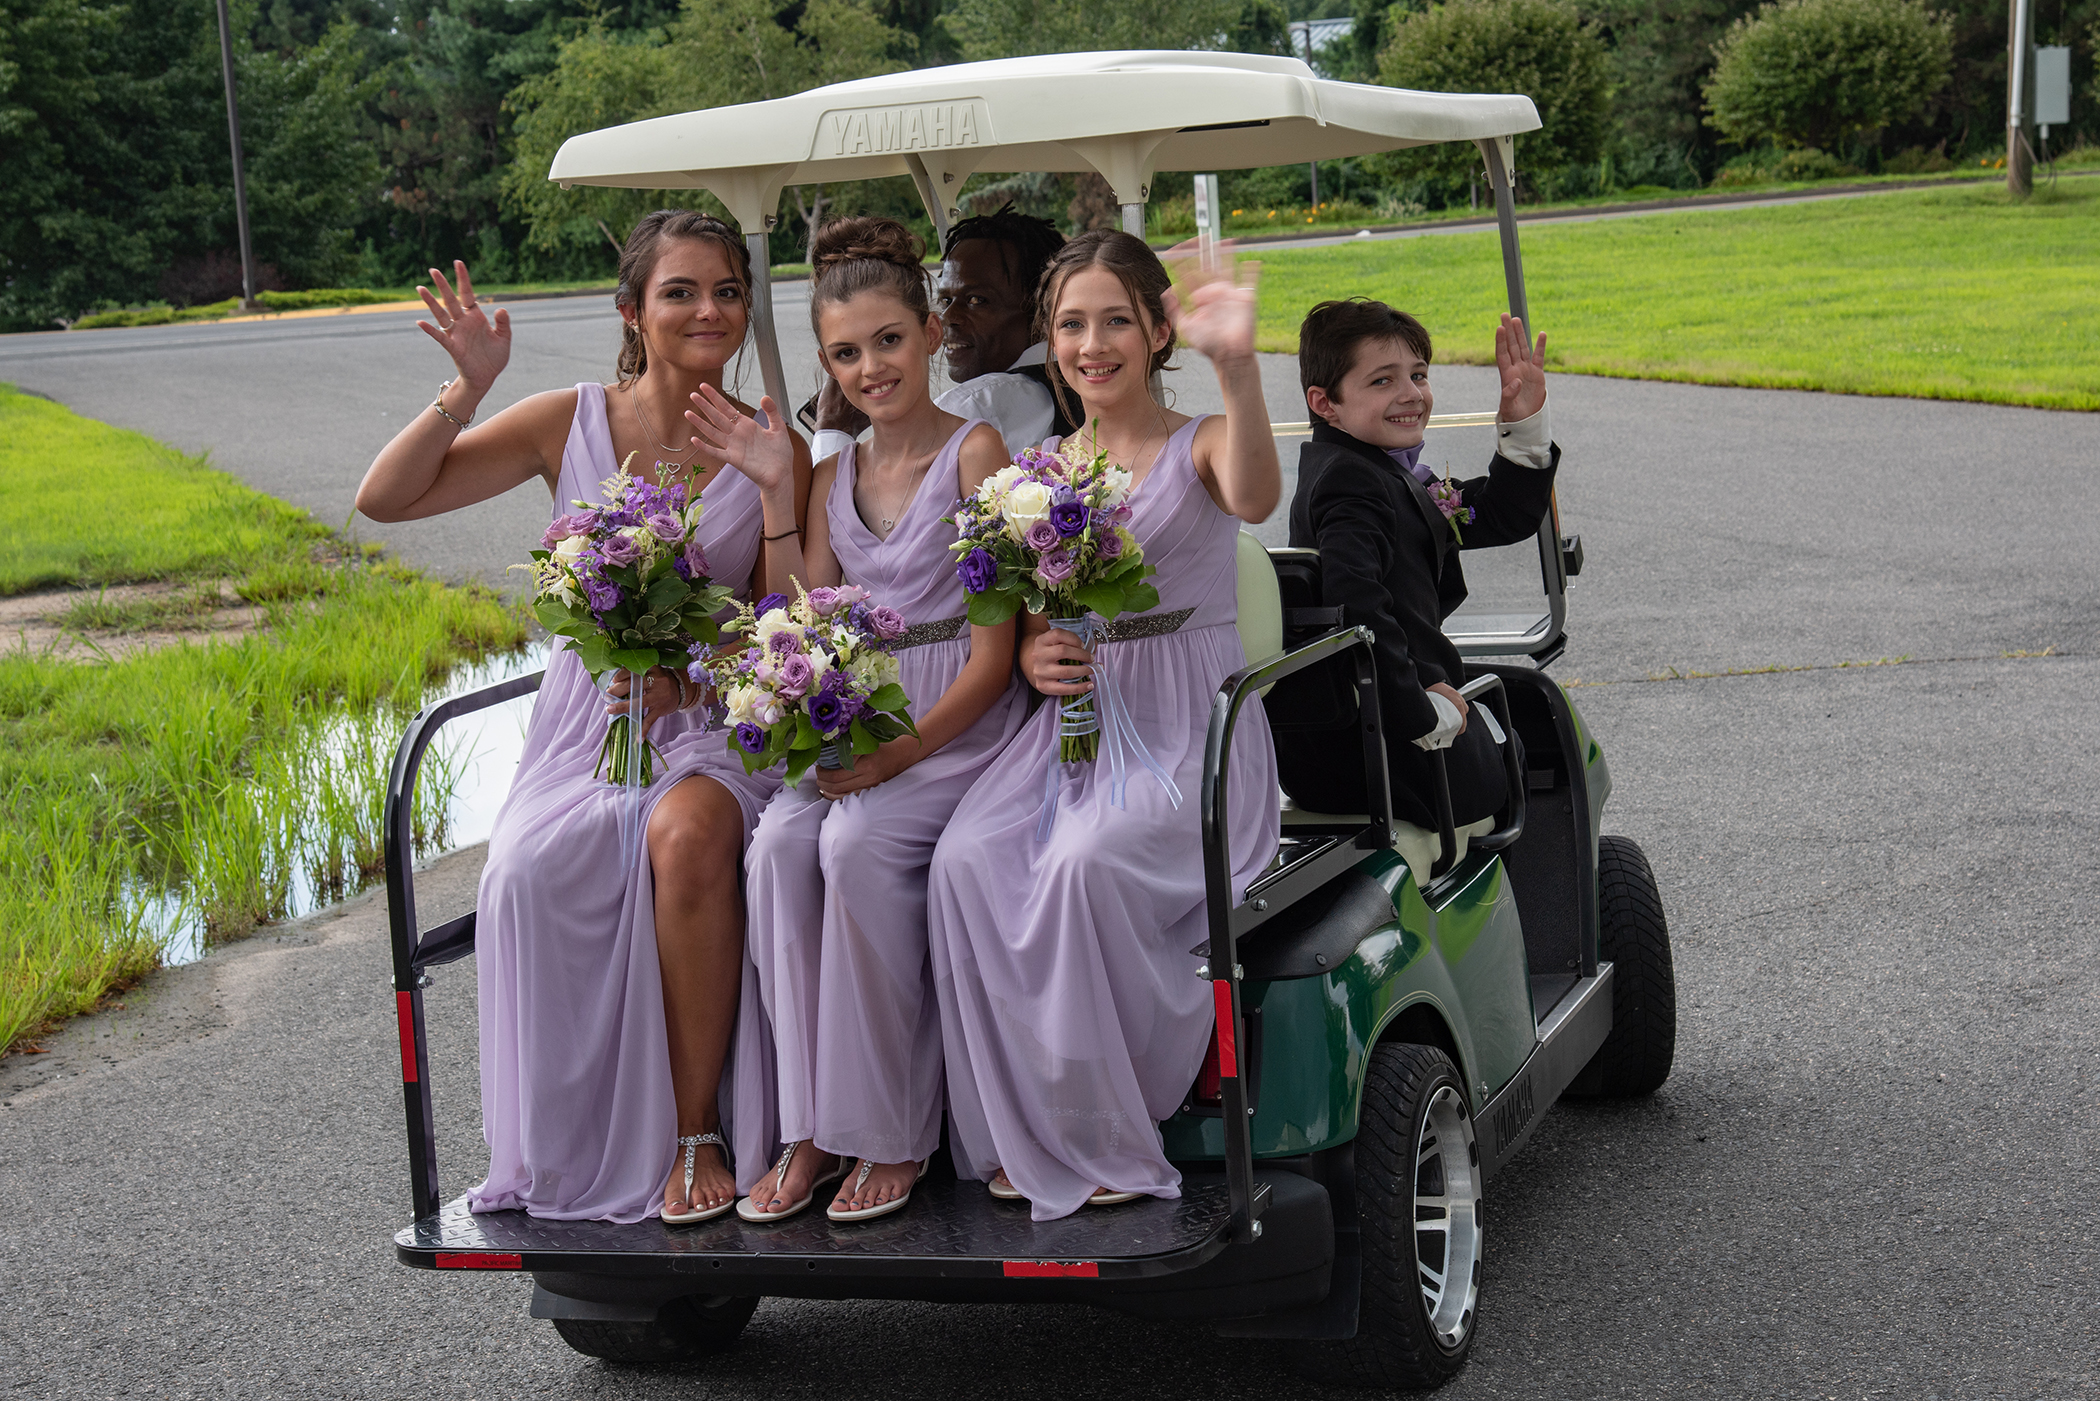 The Maneely's Banquets Golf Cart